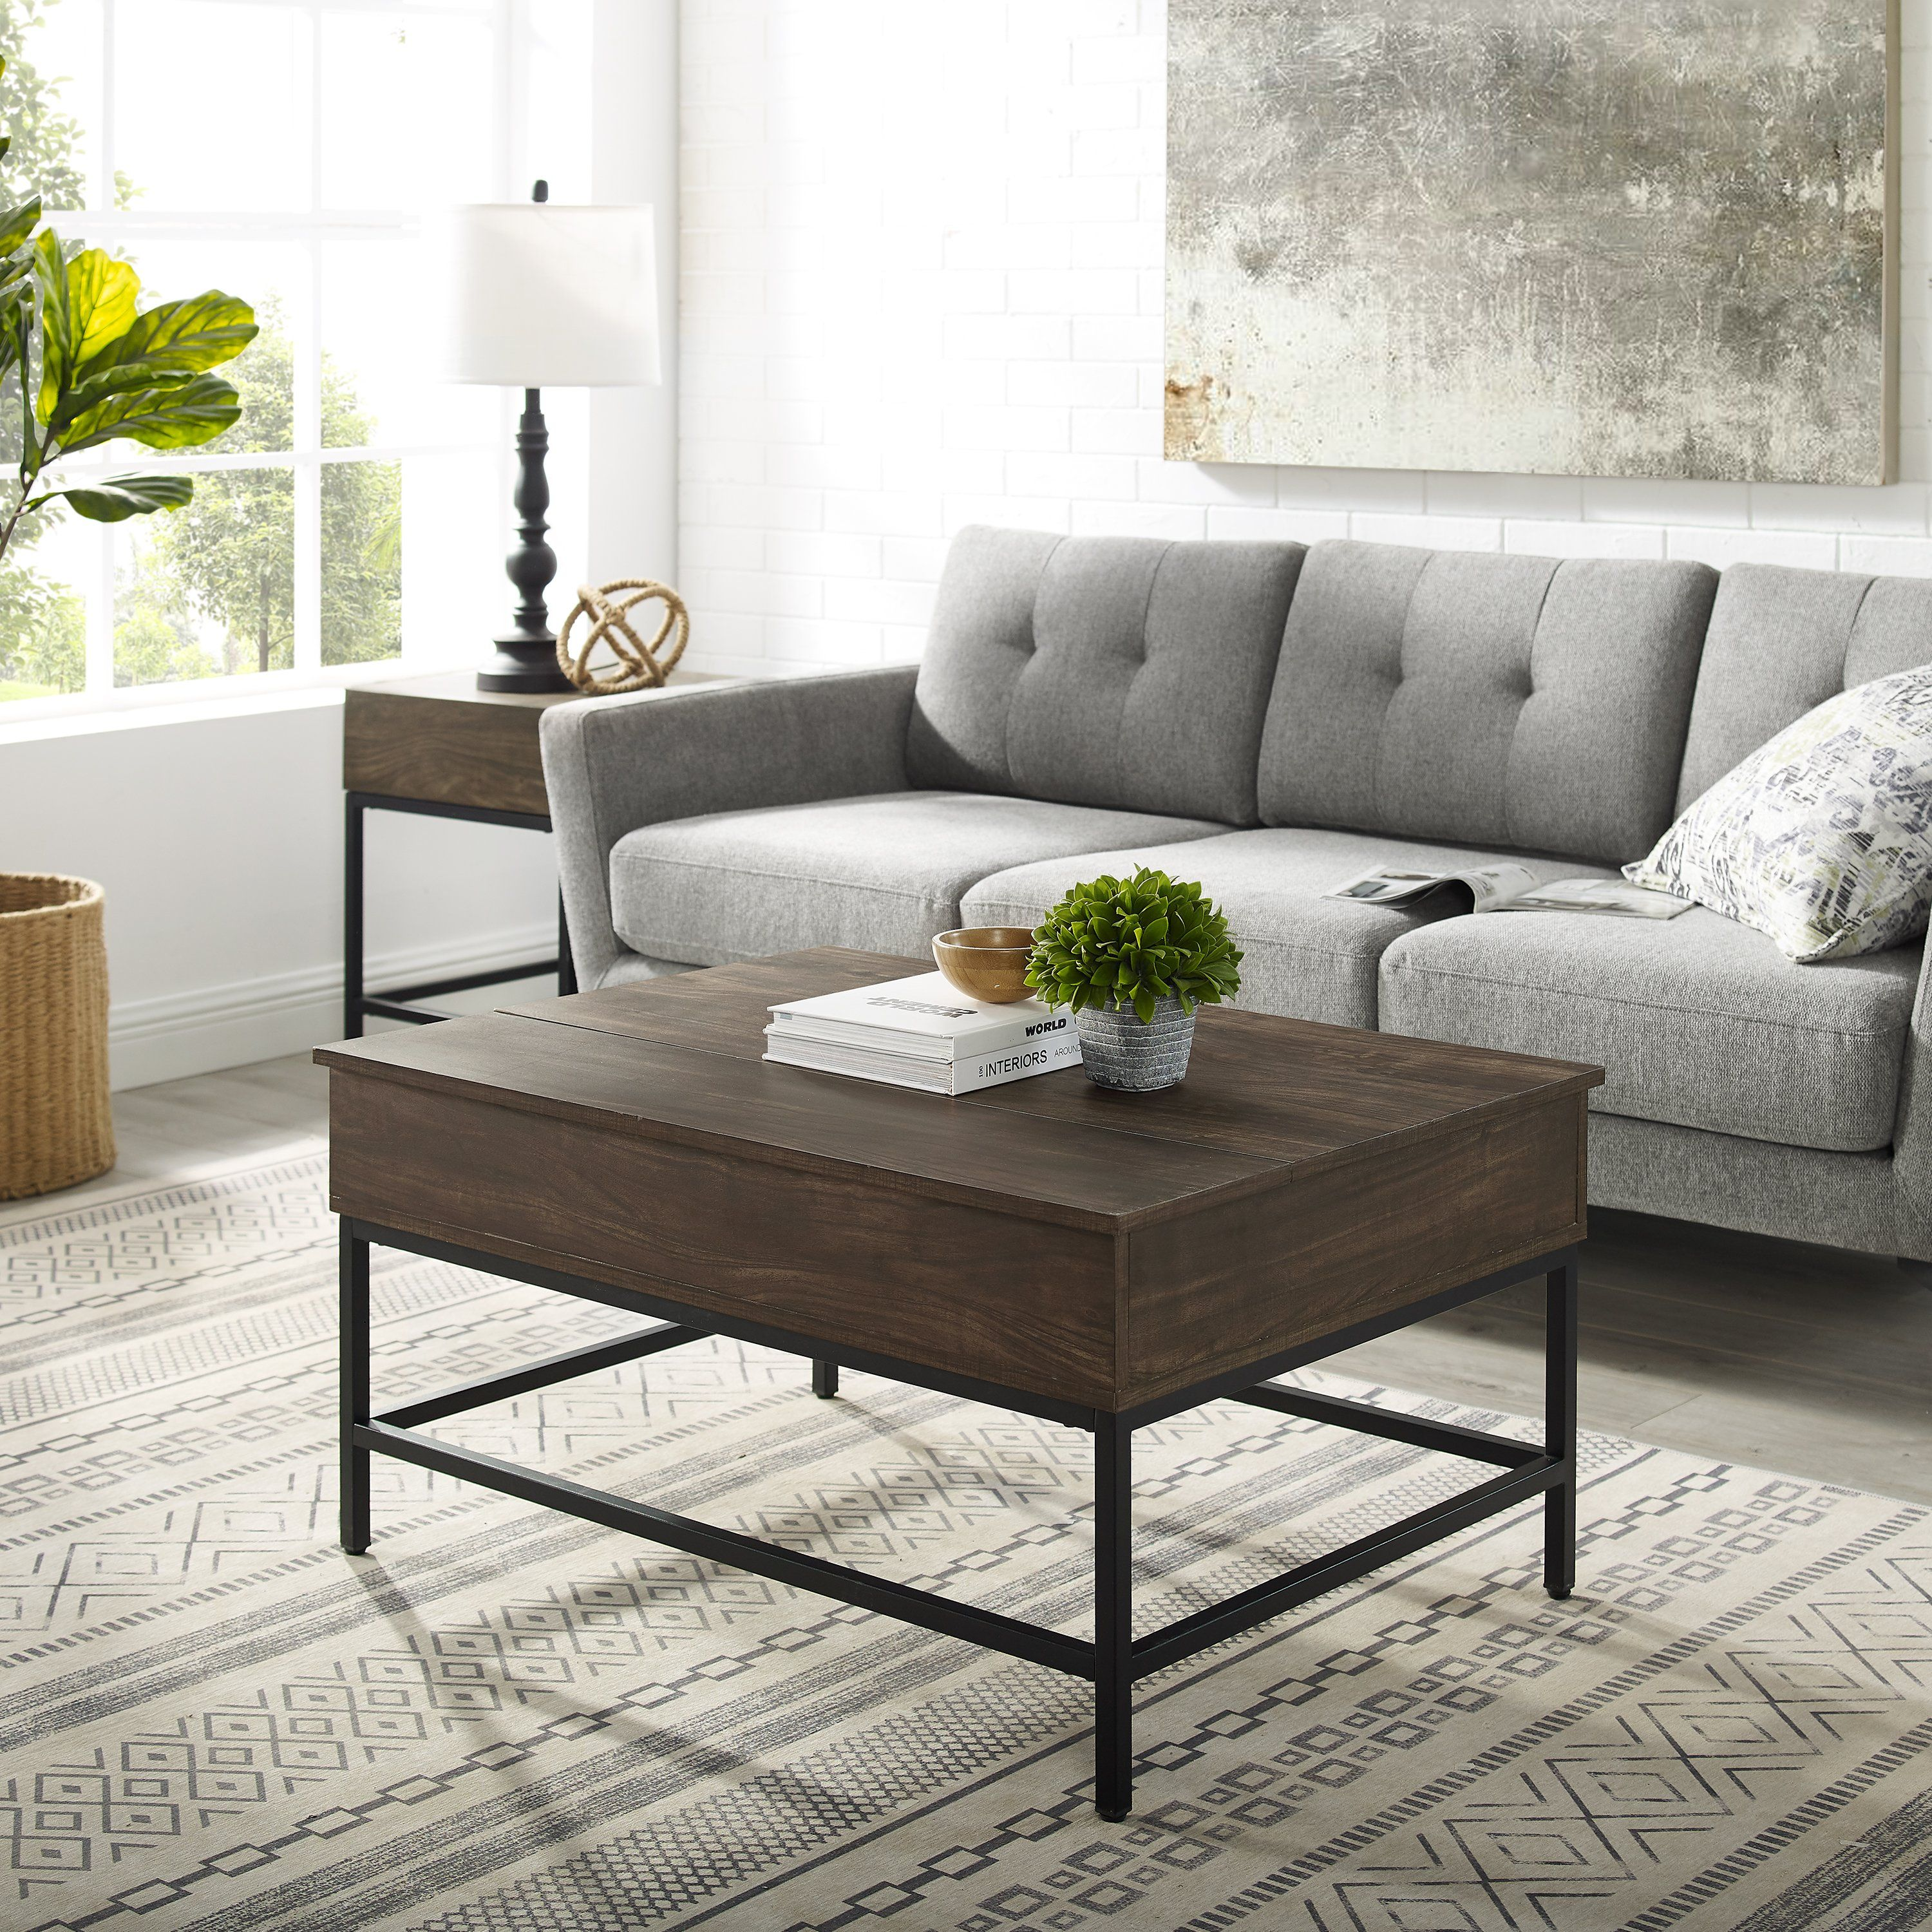 Brown And Matte Black Lift Top Storage Coffee Table Jacobsen Rc Willey Furniture Store In 2021 Coffee Table Coffee Table With Storage Furniture [ 3000 x 3000 Pixel ]